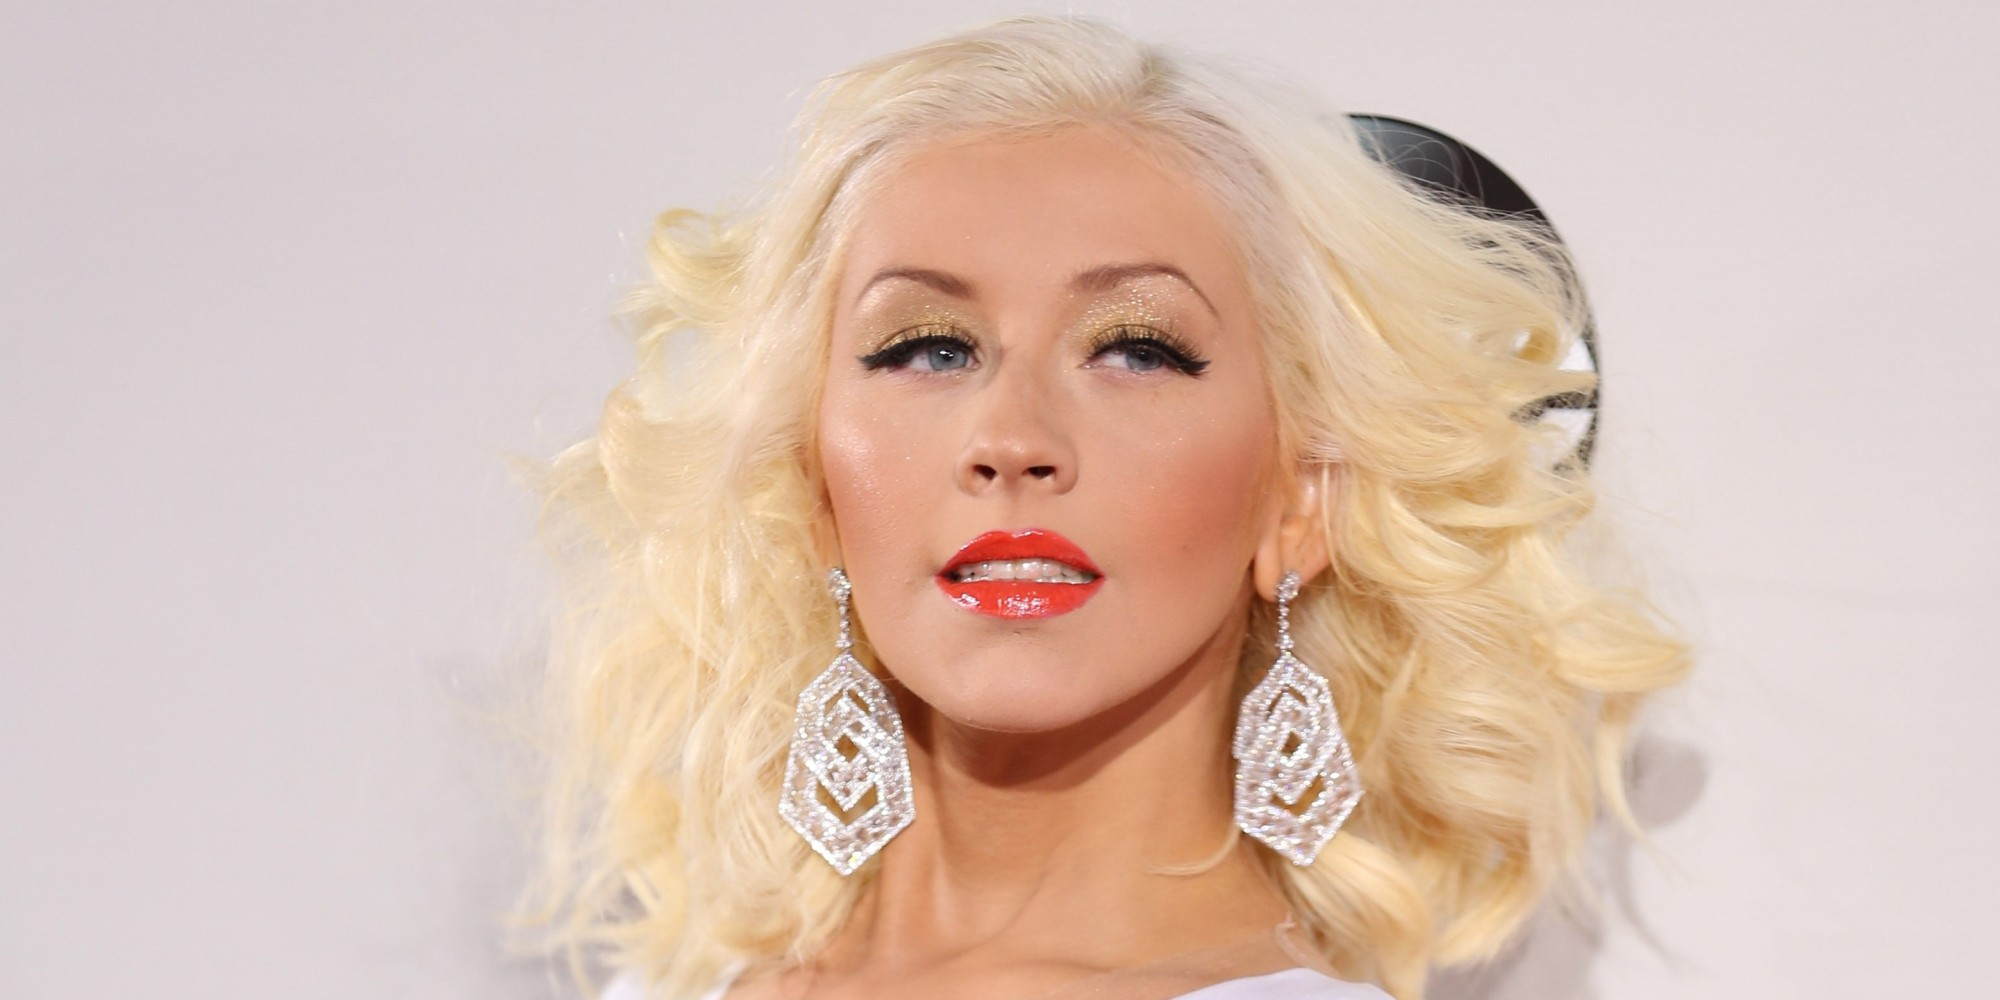 Christina Aguilera Shares First Photo Of Baby Girl Summer | The ...